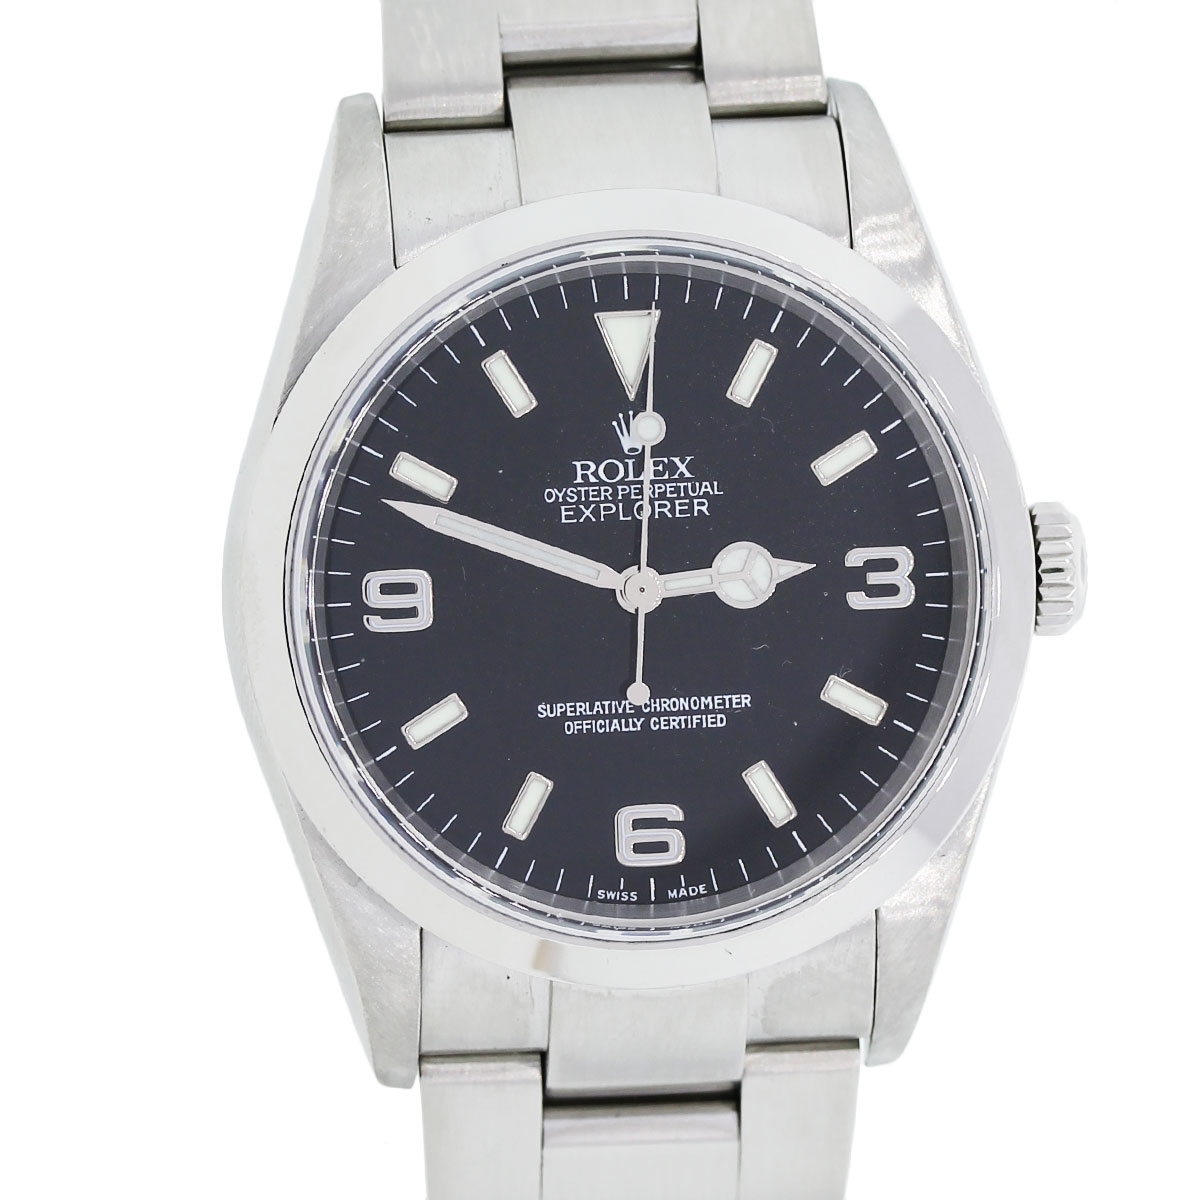 Rolex Oyster Perpetual Explorer I 214270 Stainless Steel Mens Watch